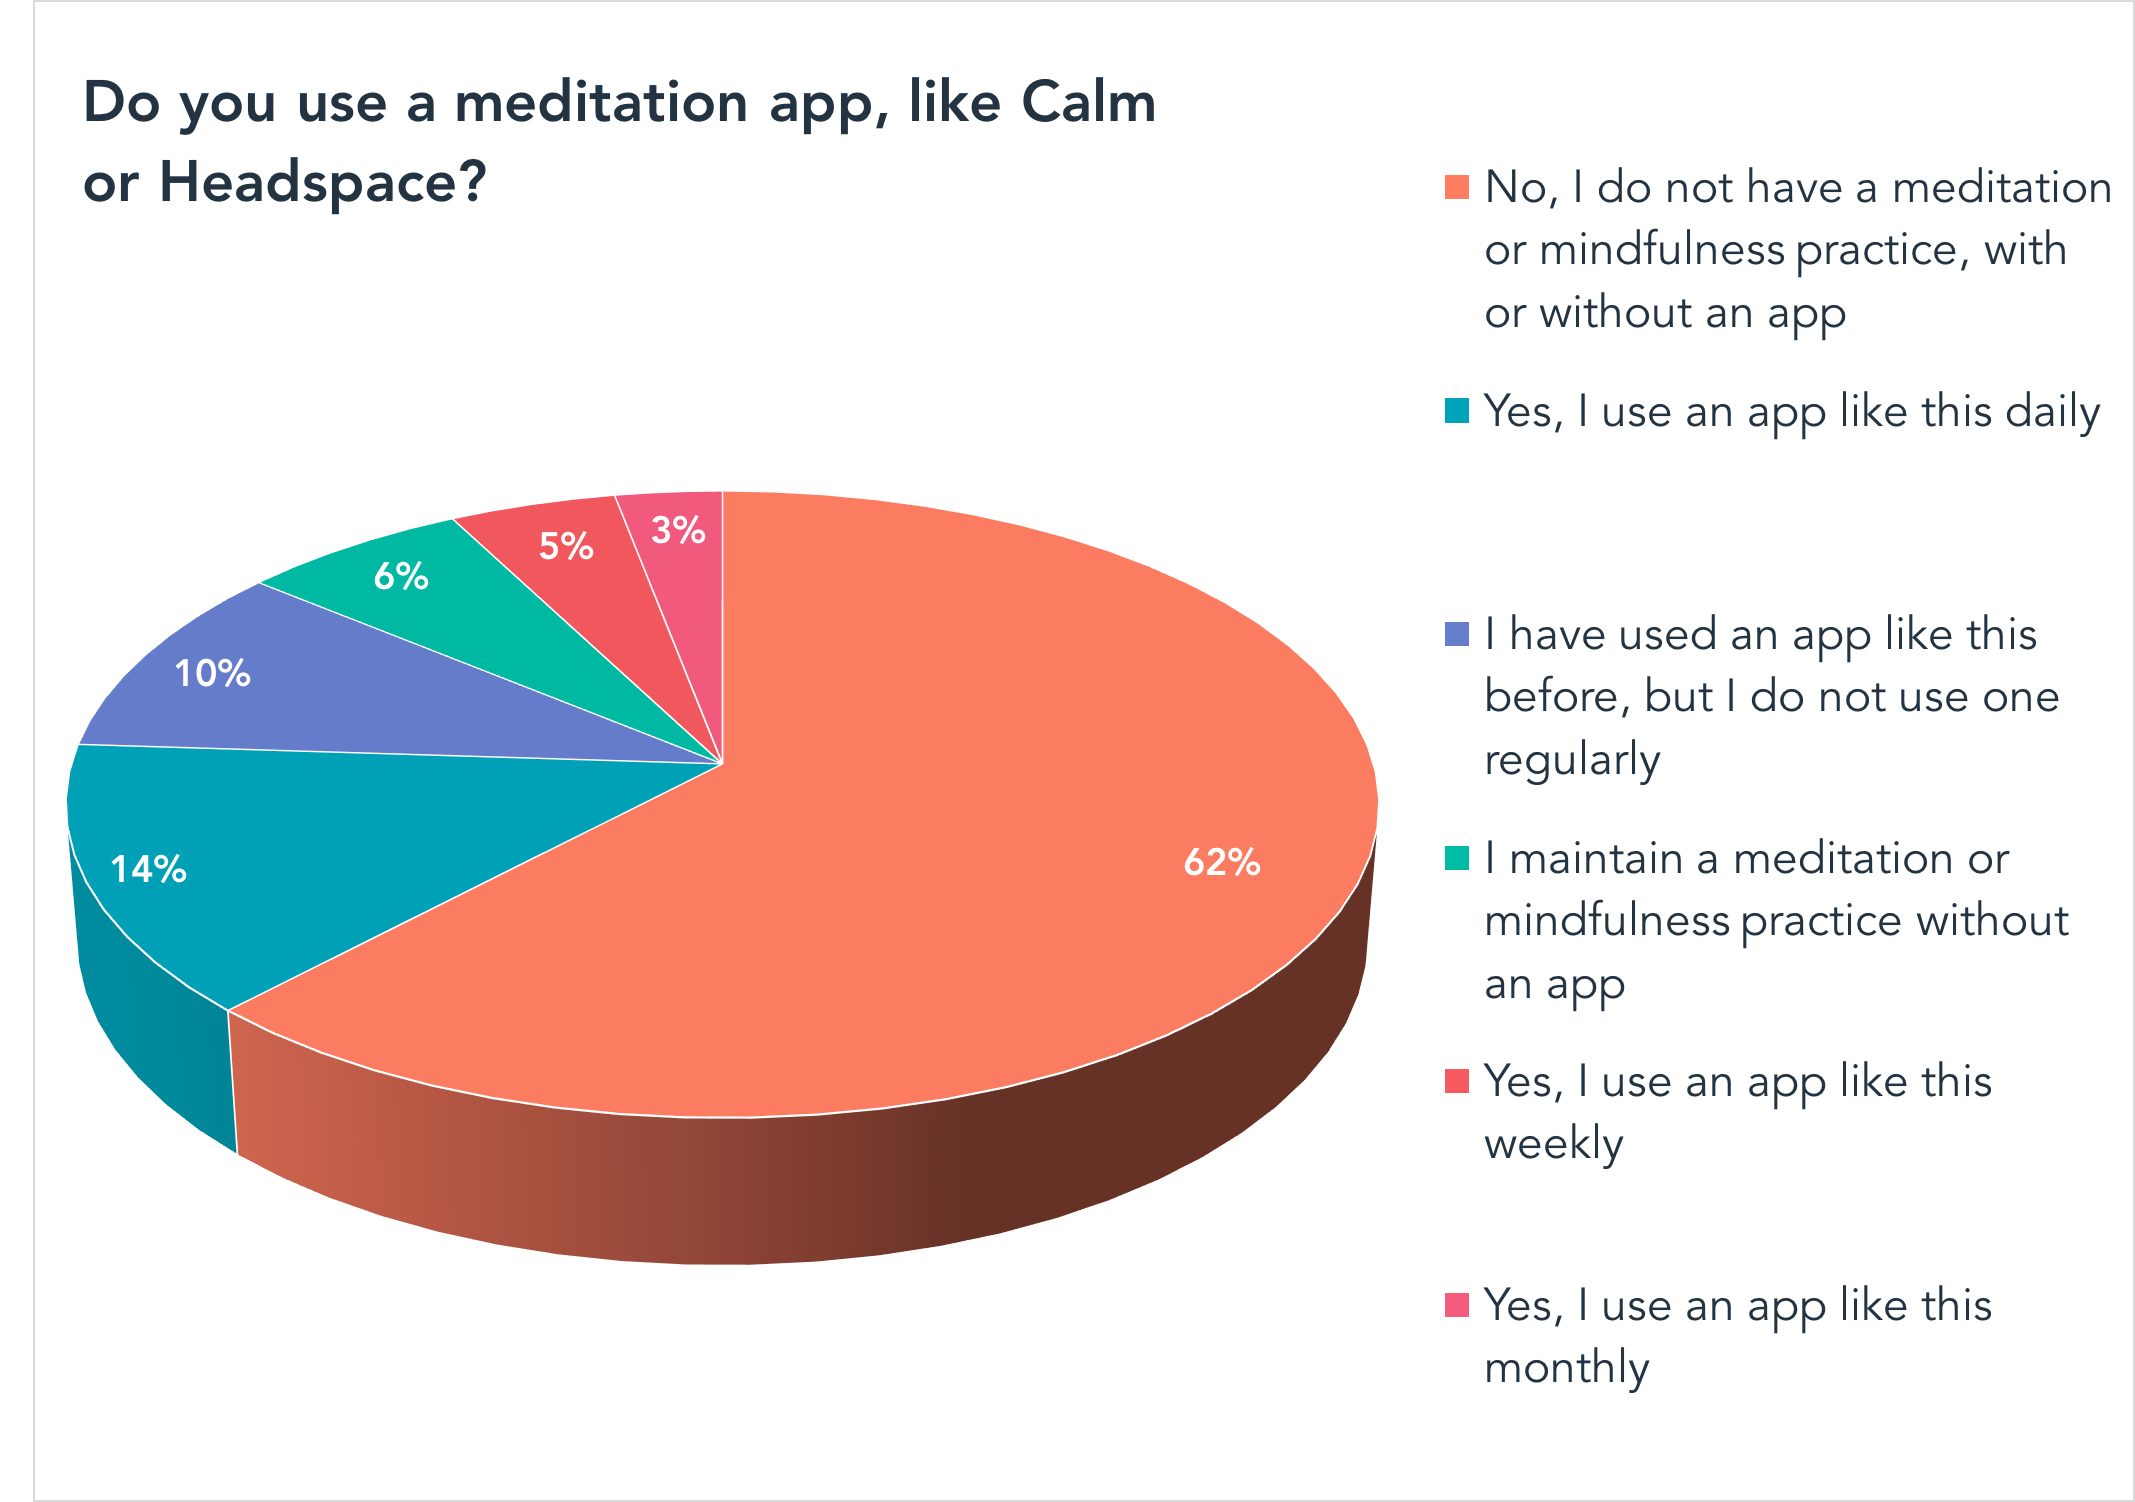 Do you use a meditation app, like Calm or Headspace? (external)